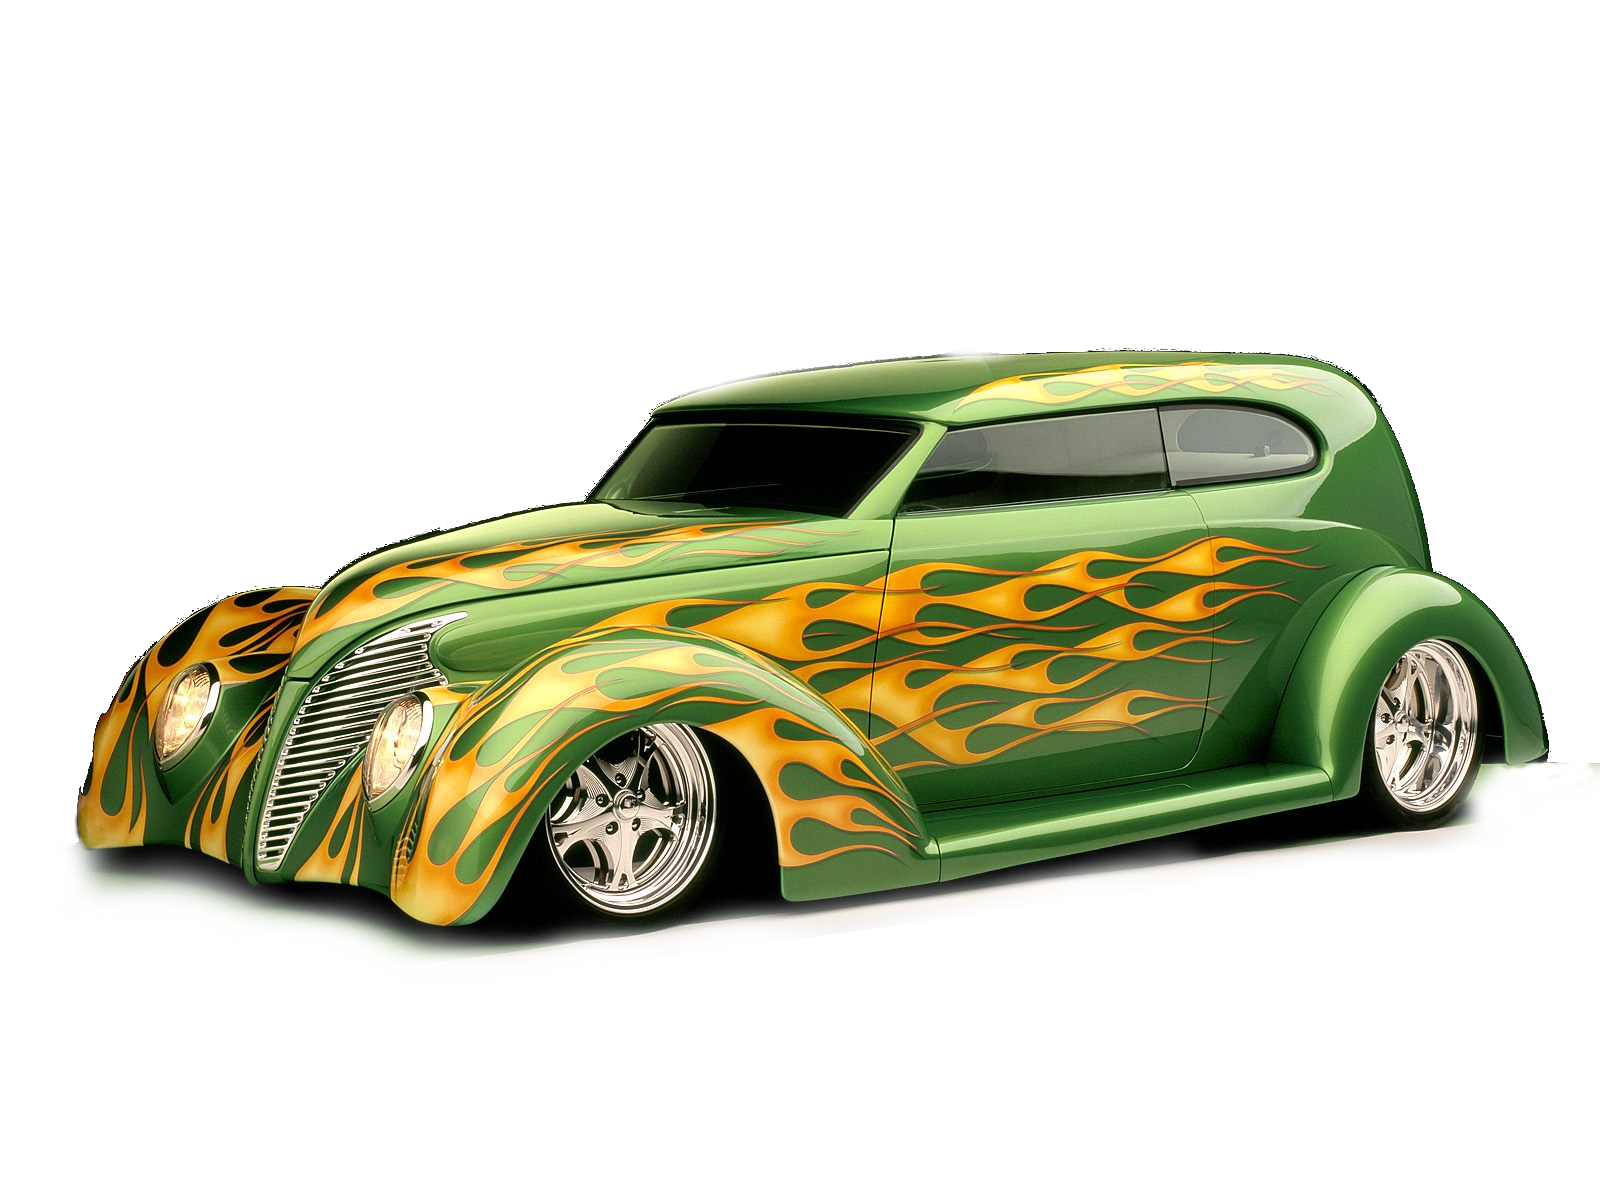 Png Car Vector image #16857